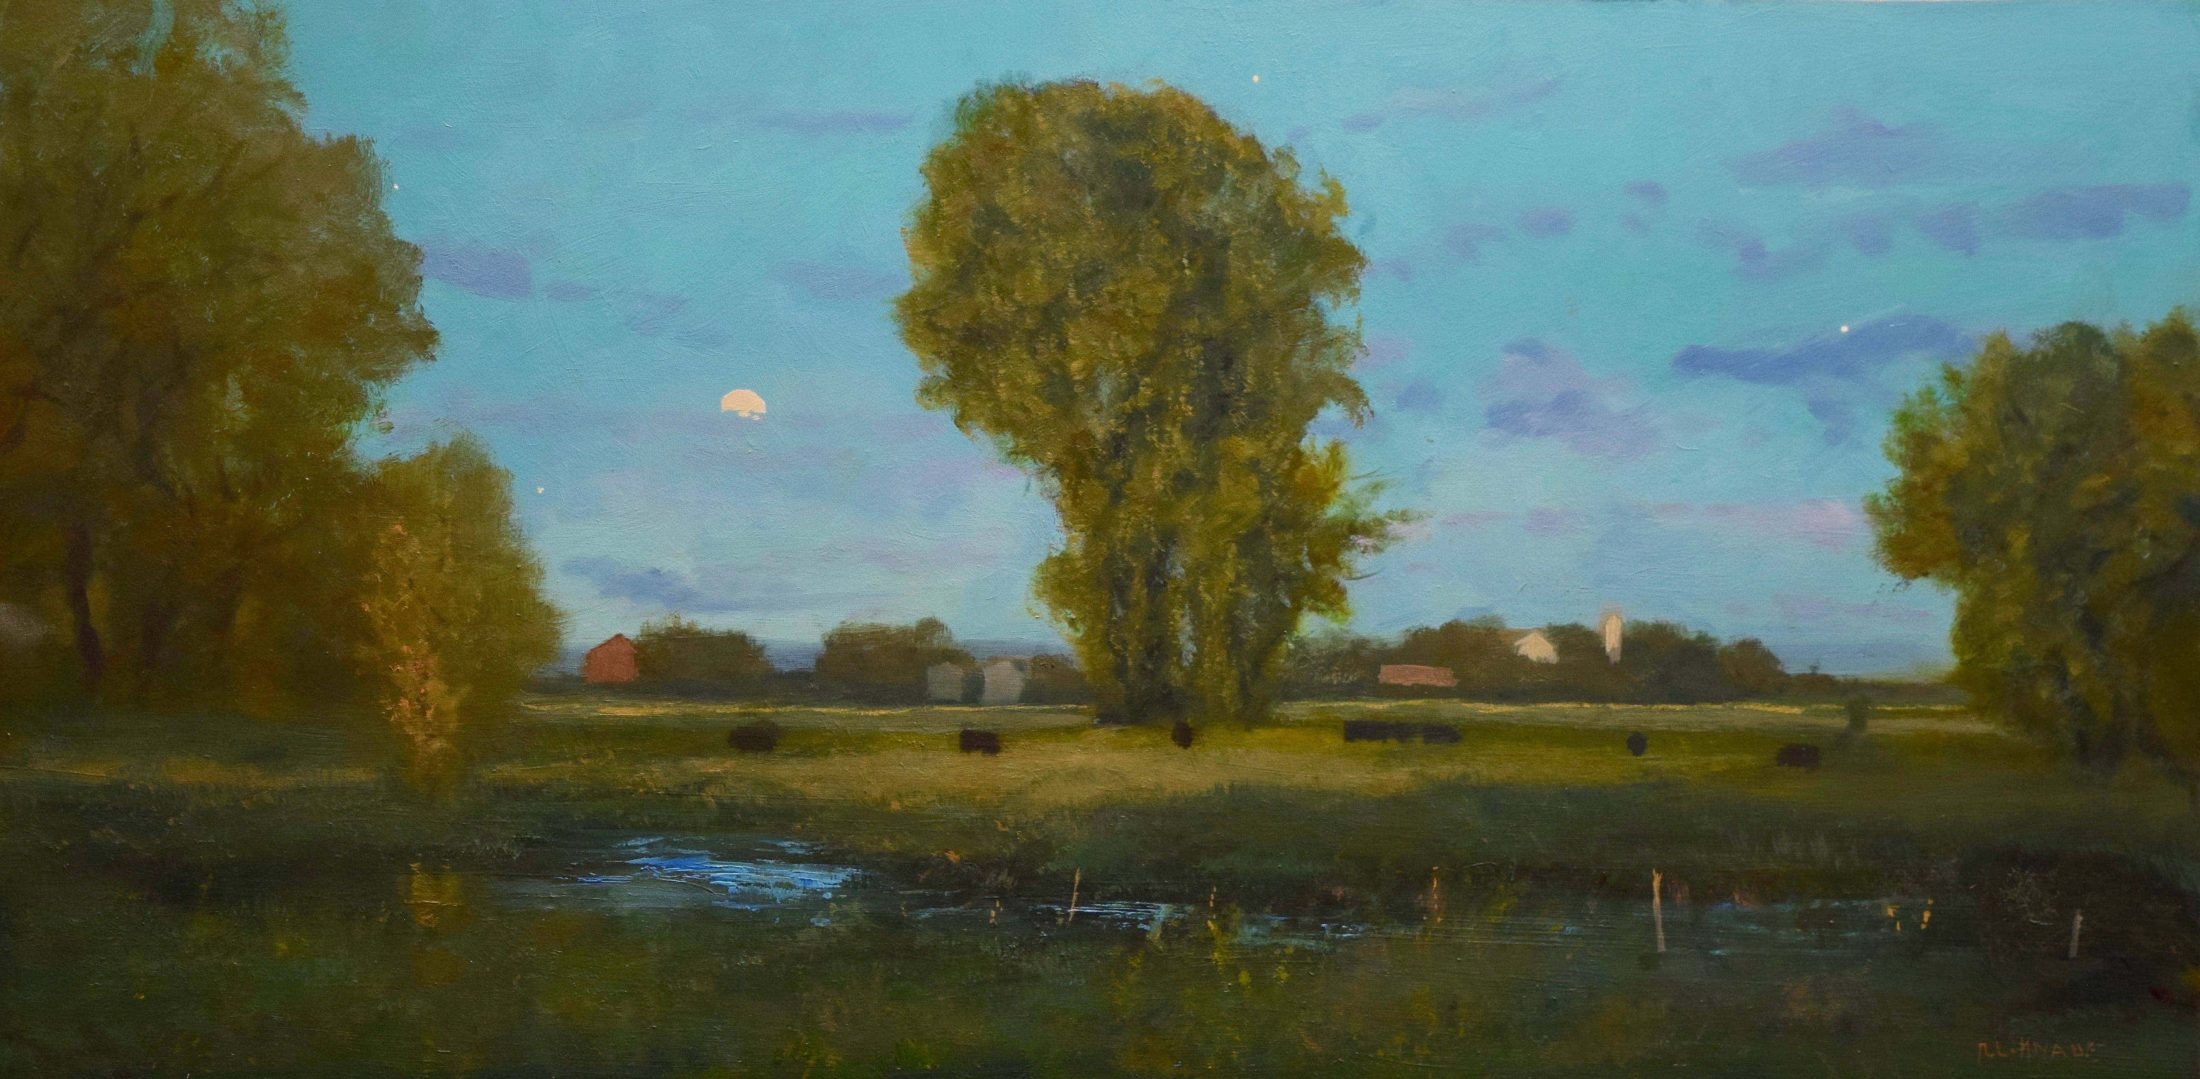 oil landscape painting by Raymond Knaub